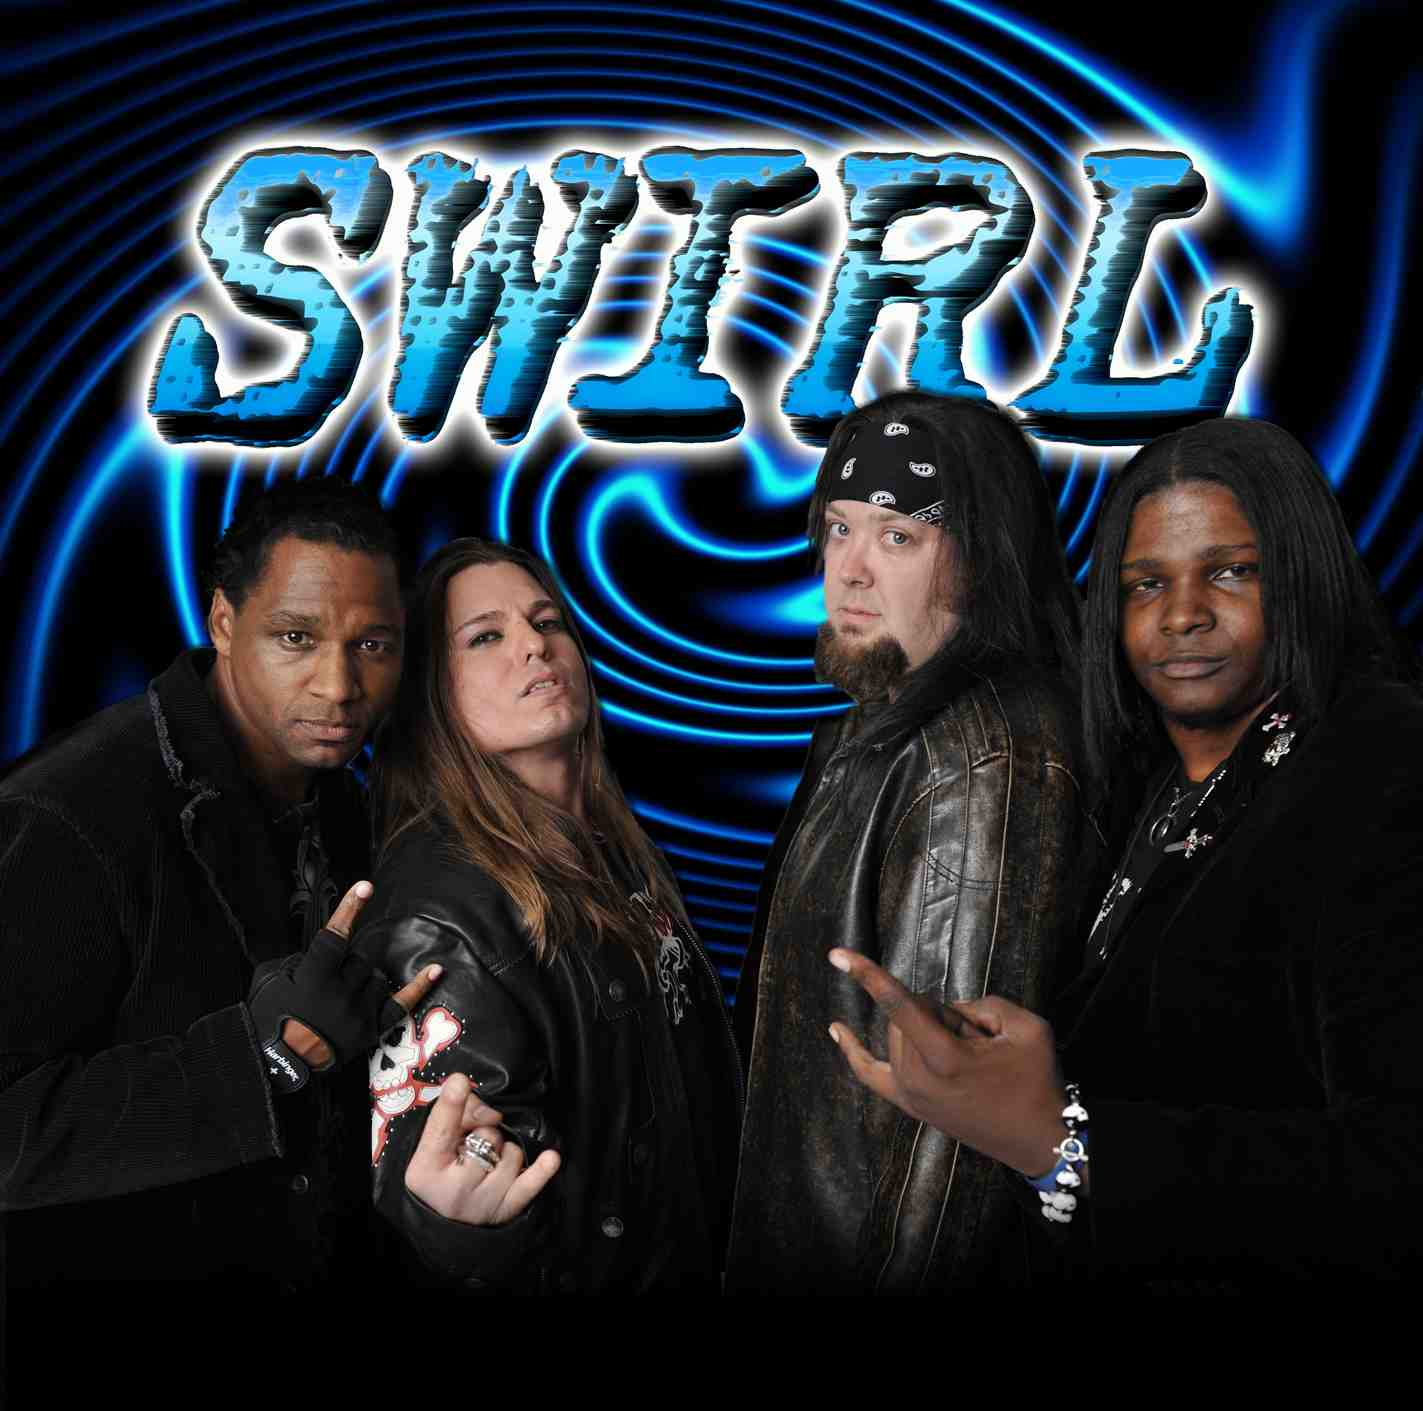 """The band SWIRL is the new age of rock. Strong, crisp, powerful, hook laden, song writing captured in a modern  production style creating catchy, radio friendly, instantly memorable,  emotionally impactful songs that are thick with rhythmic movements,  hooks and sustain ability.      Get it now - ITUNES: https://itunes.apple.com/us/album/swirl/id627466984    Official Website  : http://www.swirltheband.com/          SWIRL """"Rise Up"""" video  : http://www.youtube.com/watch?v=_JVm9uFo9Eo"""